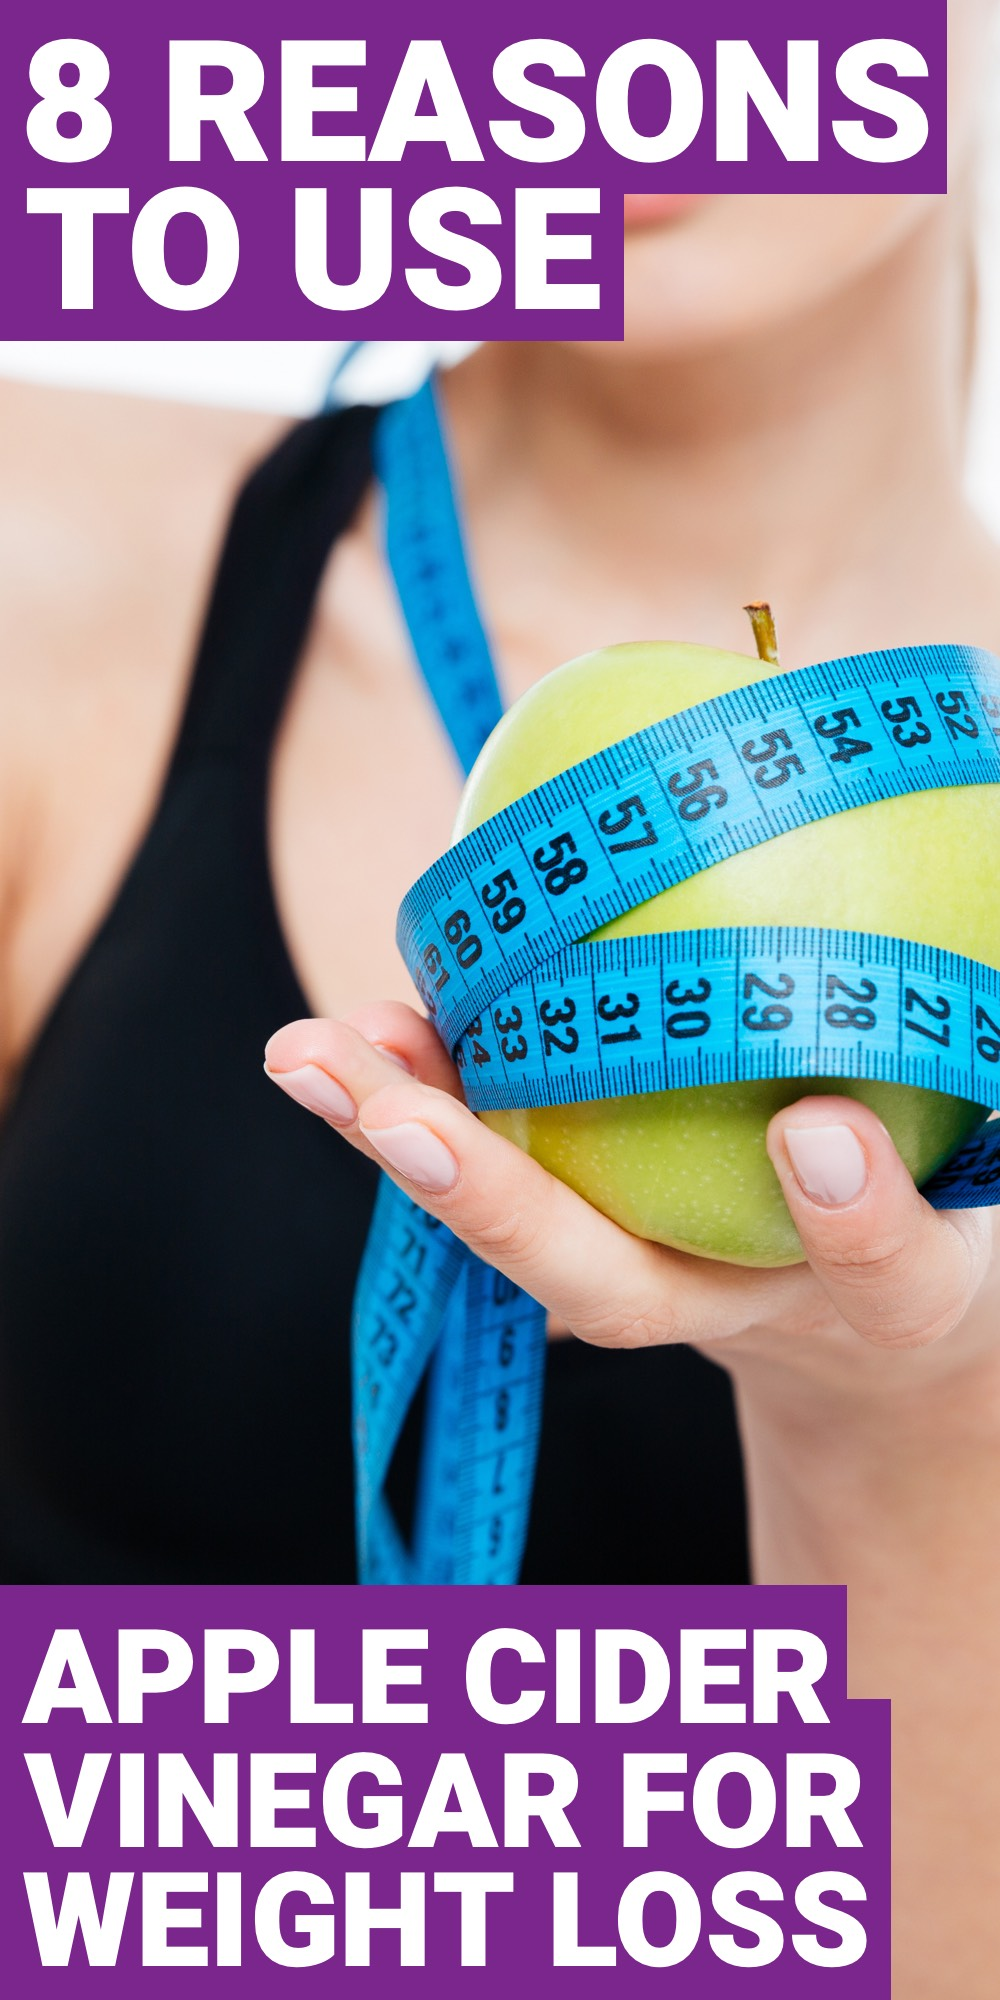 If you want to use apple cider vinegar for weight loss then you should look at these 8 reasons why apple cider vinegar should be used for weight loss.